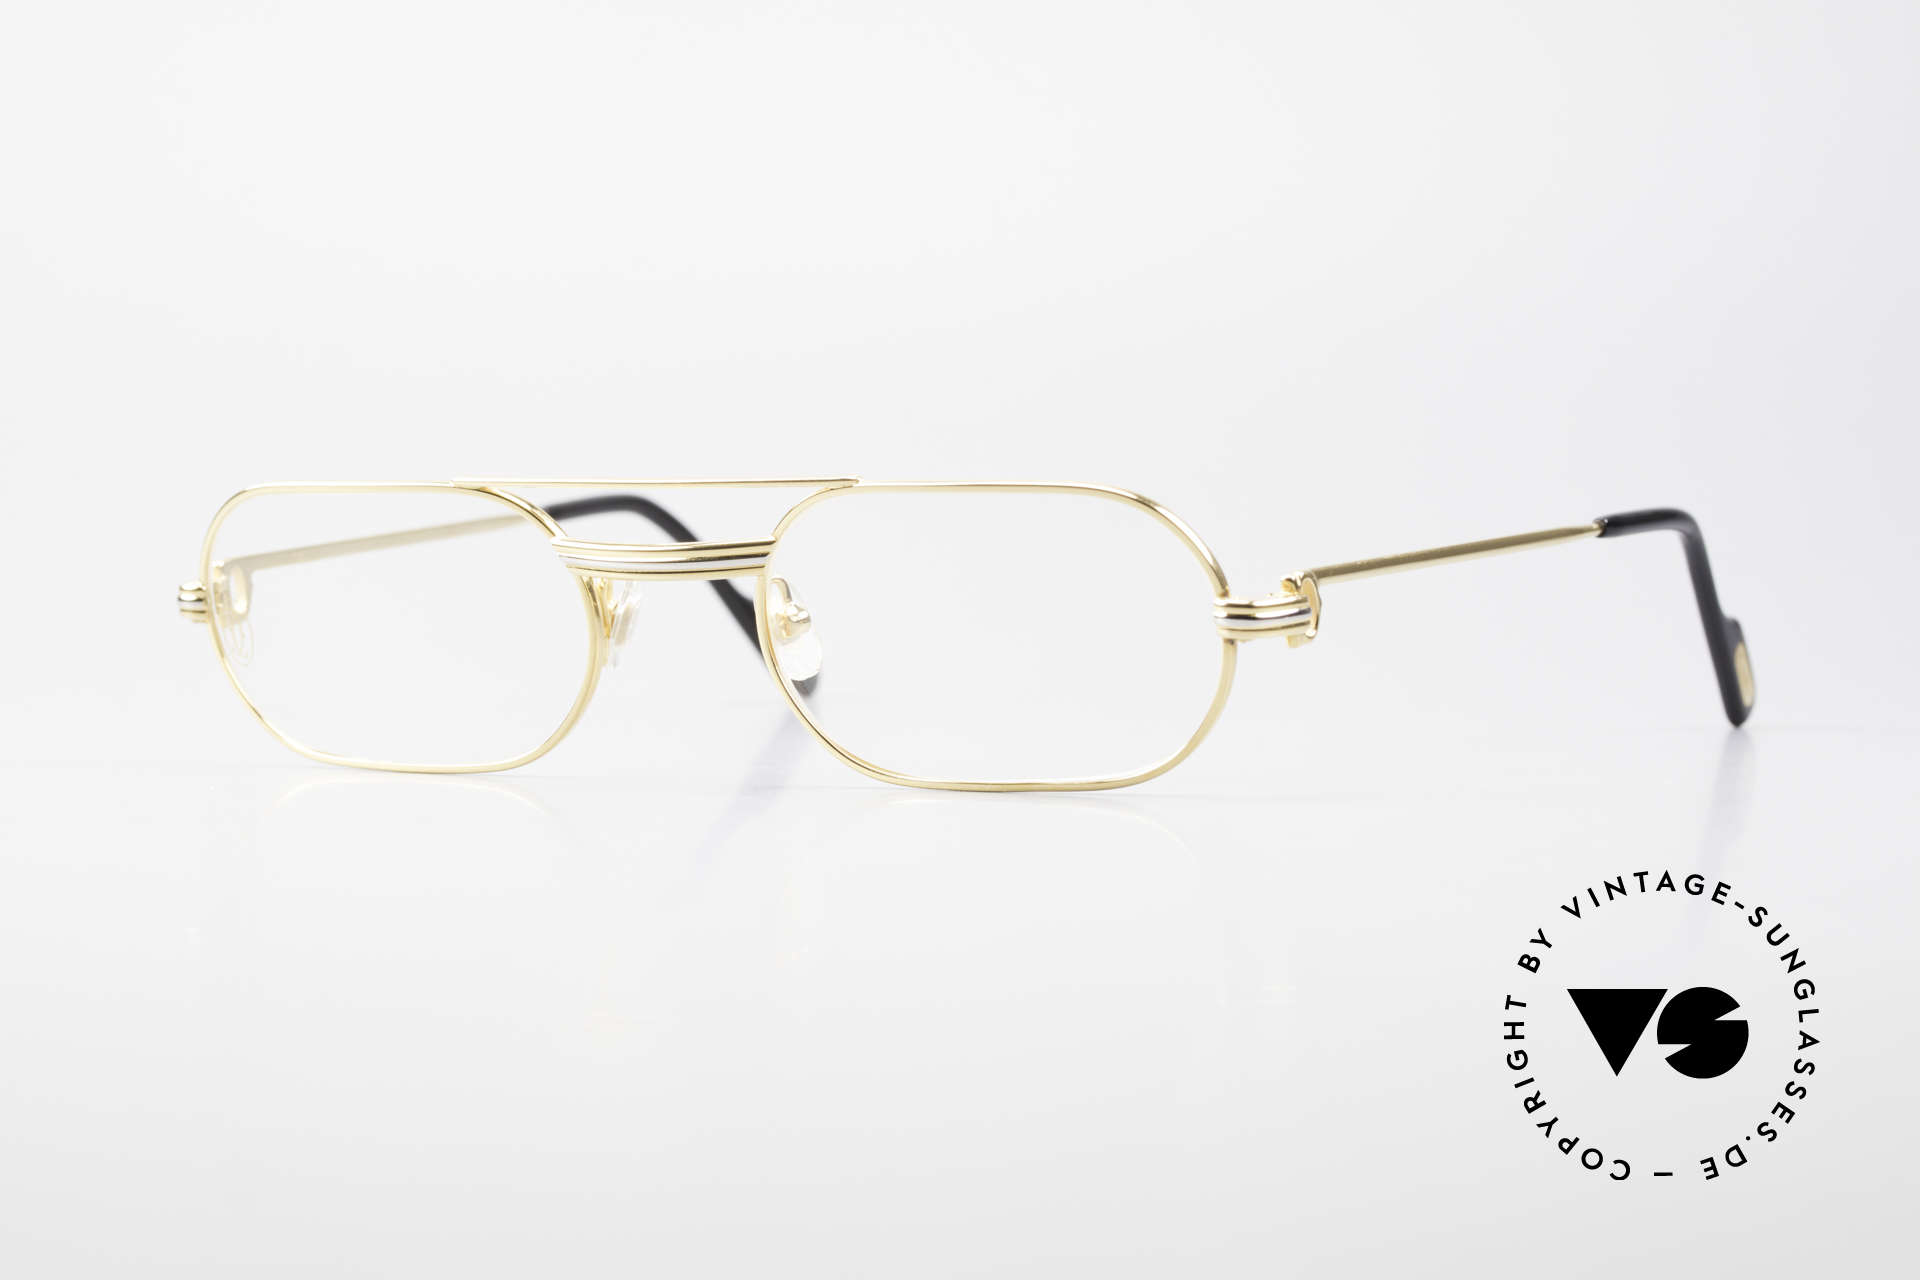 Cartier MUST LC Rose - S Limited Rosé Gold Eyeglasses, MUST: the first model of the Lunettes Collection '83, Made for Men and Women